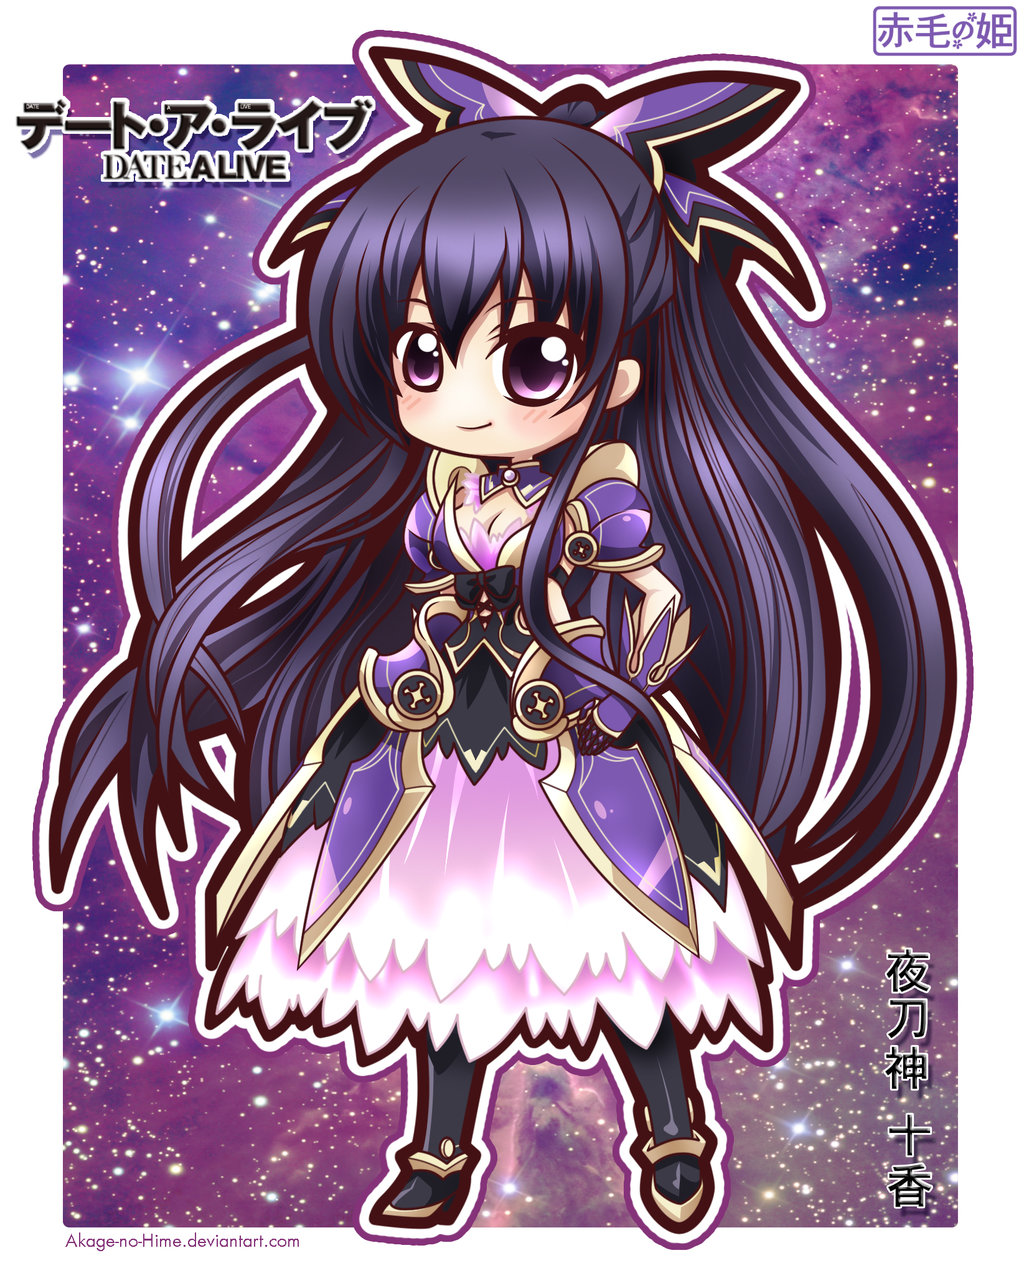 Date A Live Tohka Yatogami By Akage No Hime D6icck2